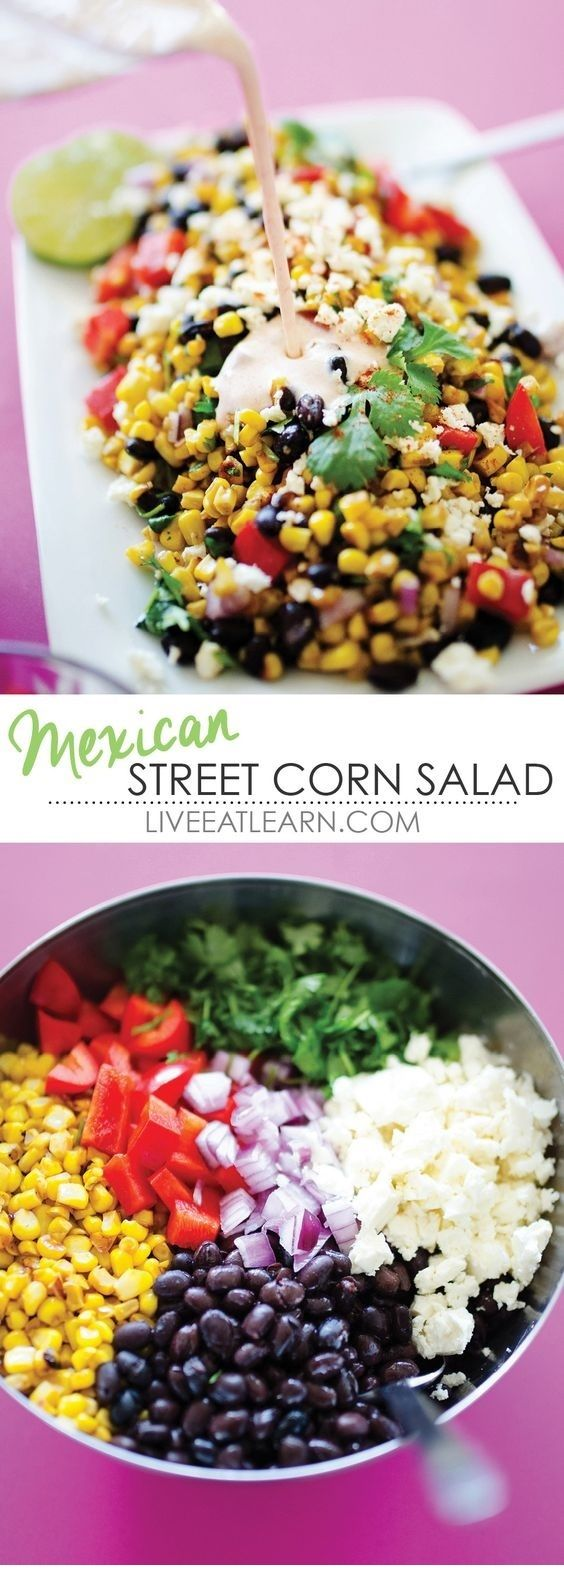 MEXICAN STREET CORN SALAD images